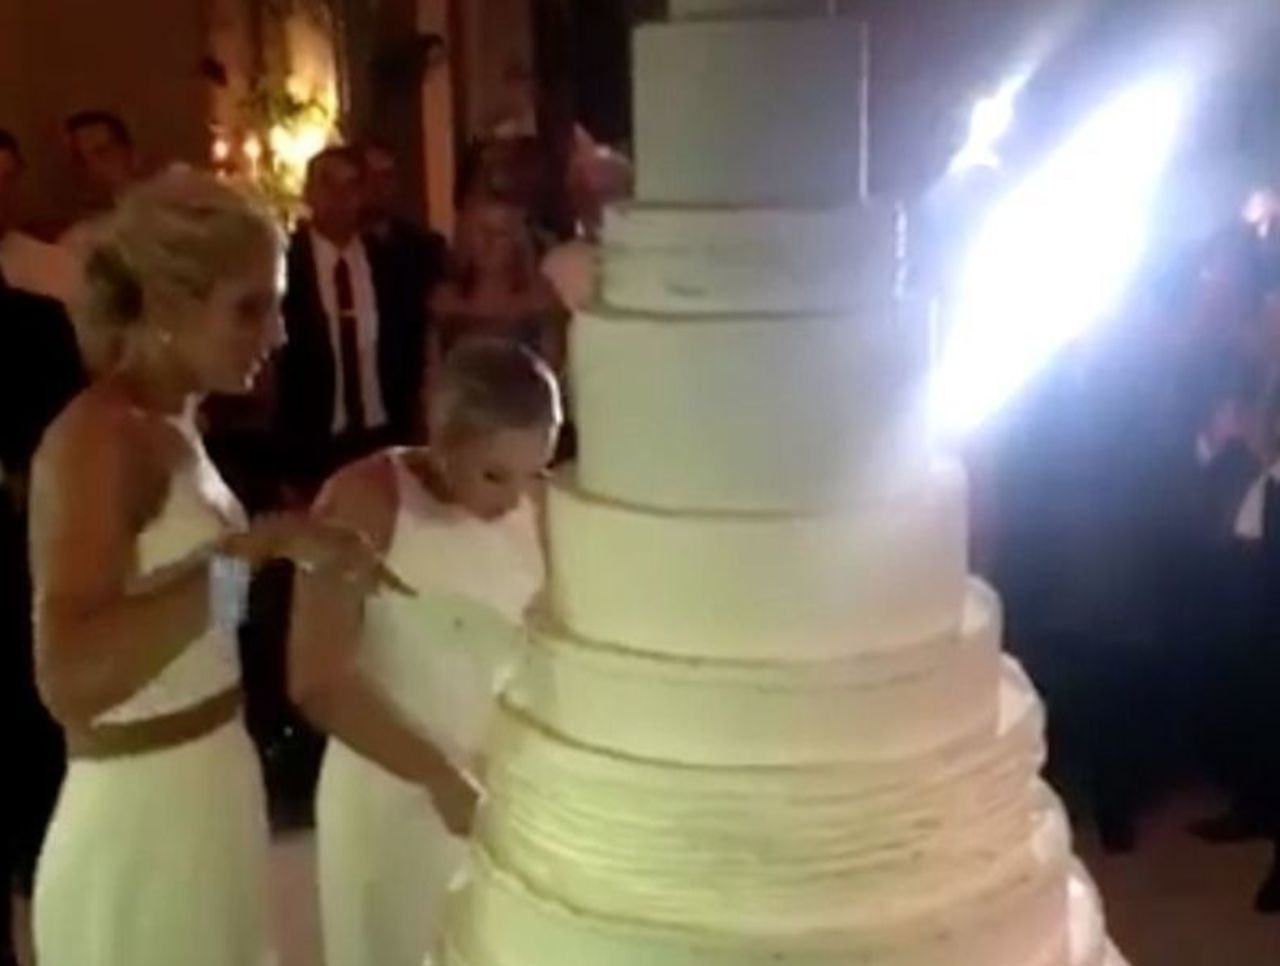 elena delle donnes wedding included 6foot4 cake